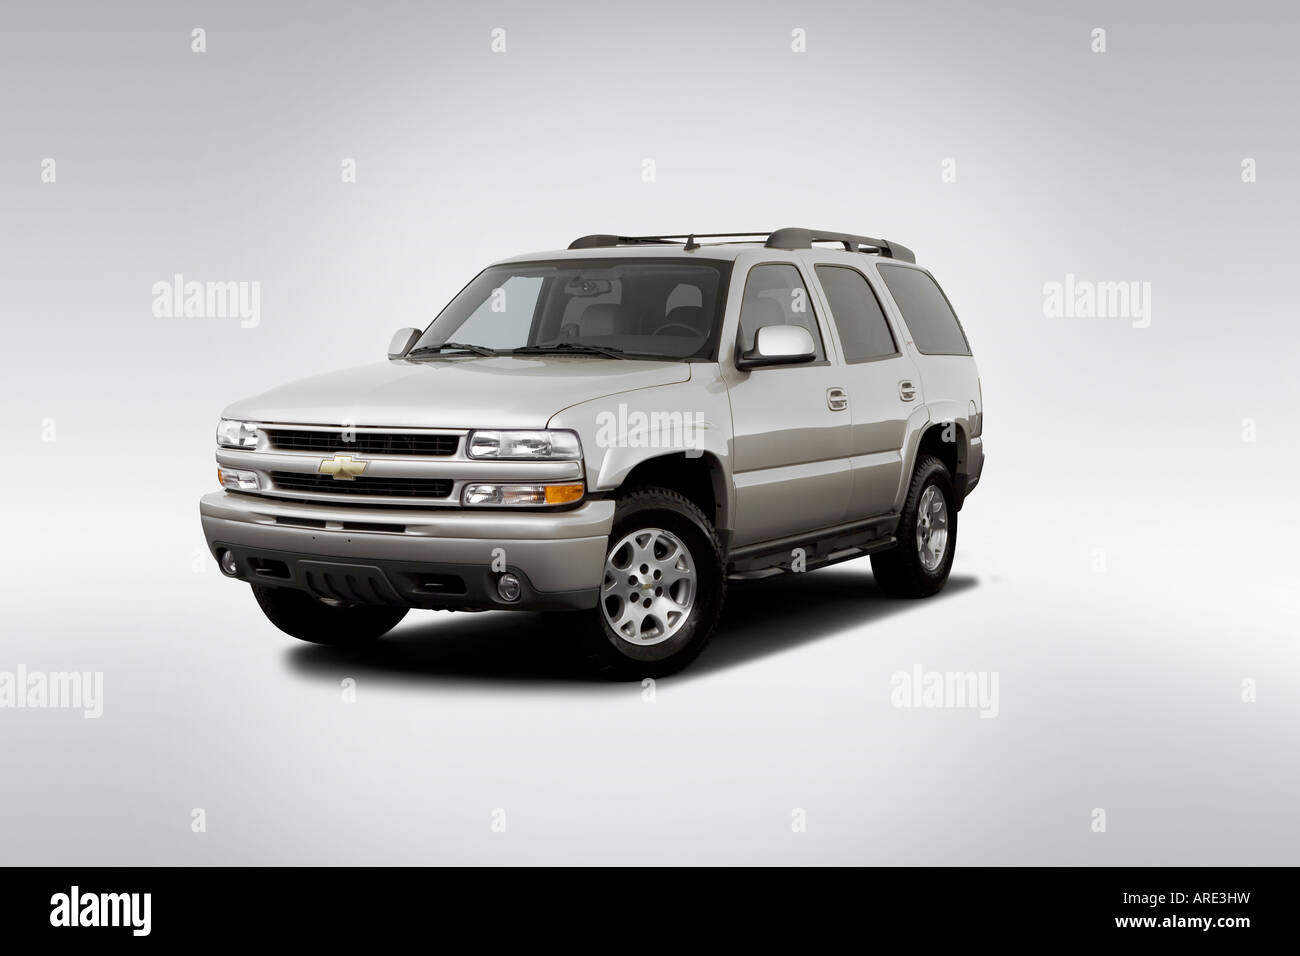 2006 Chevrolet Tahoe Z71 in Silver - Front angle view Stock Photo ...